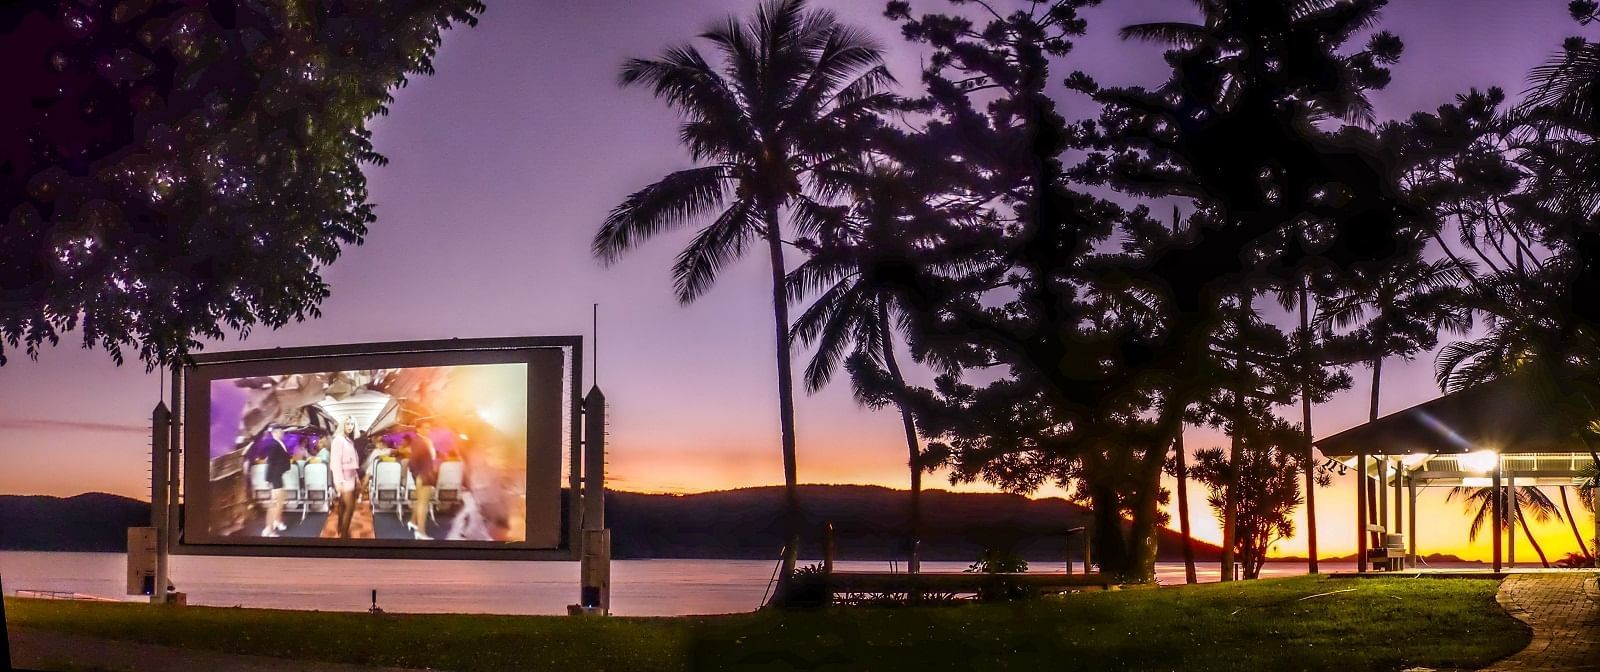 Video screen placed on beach at Daydream Island Resort